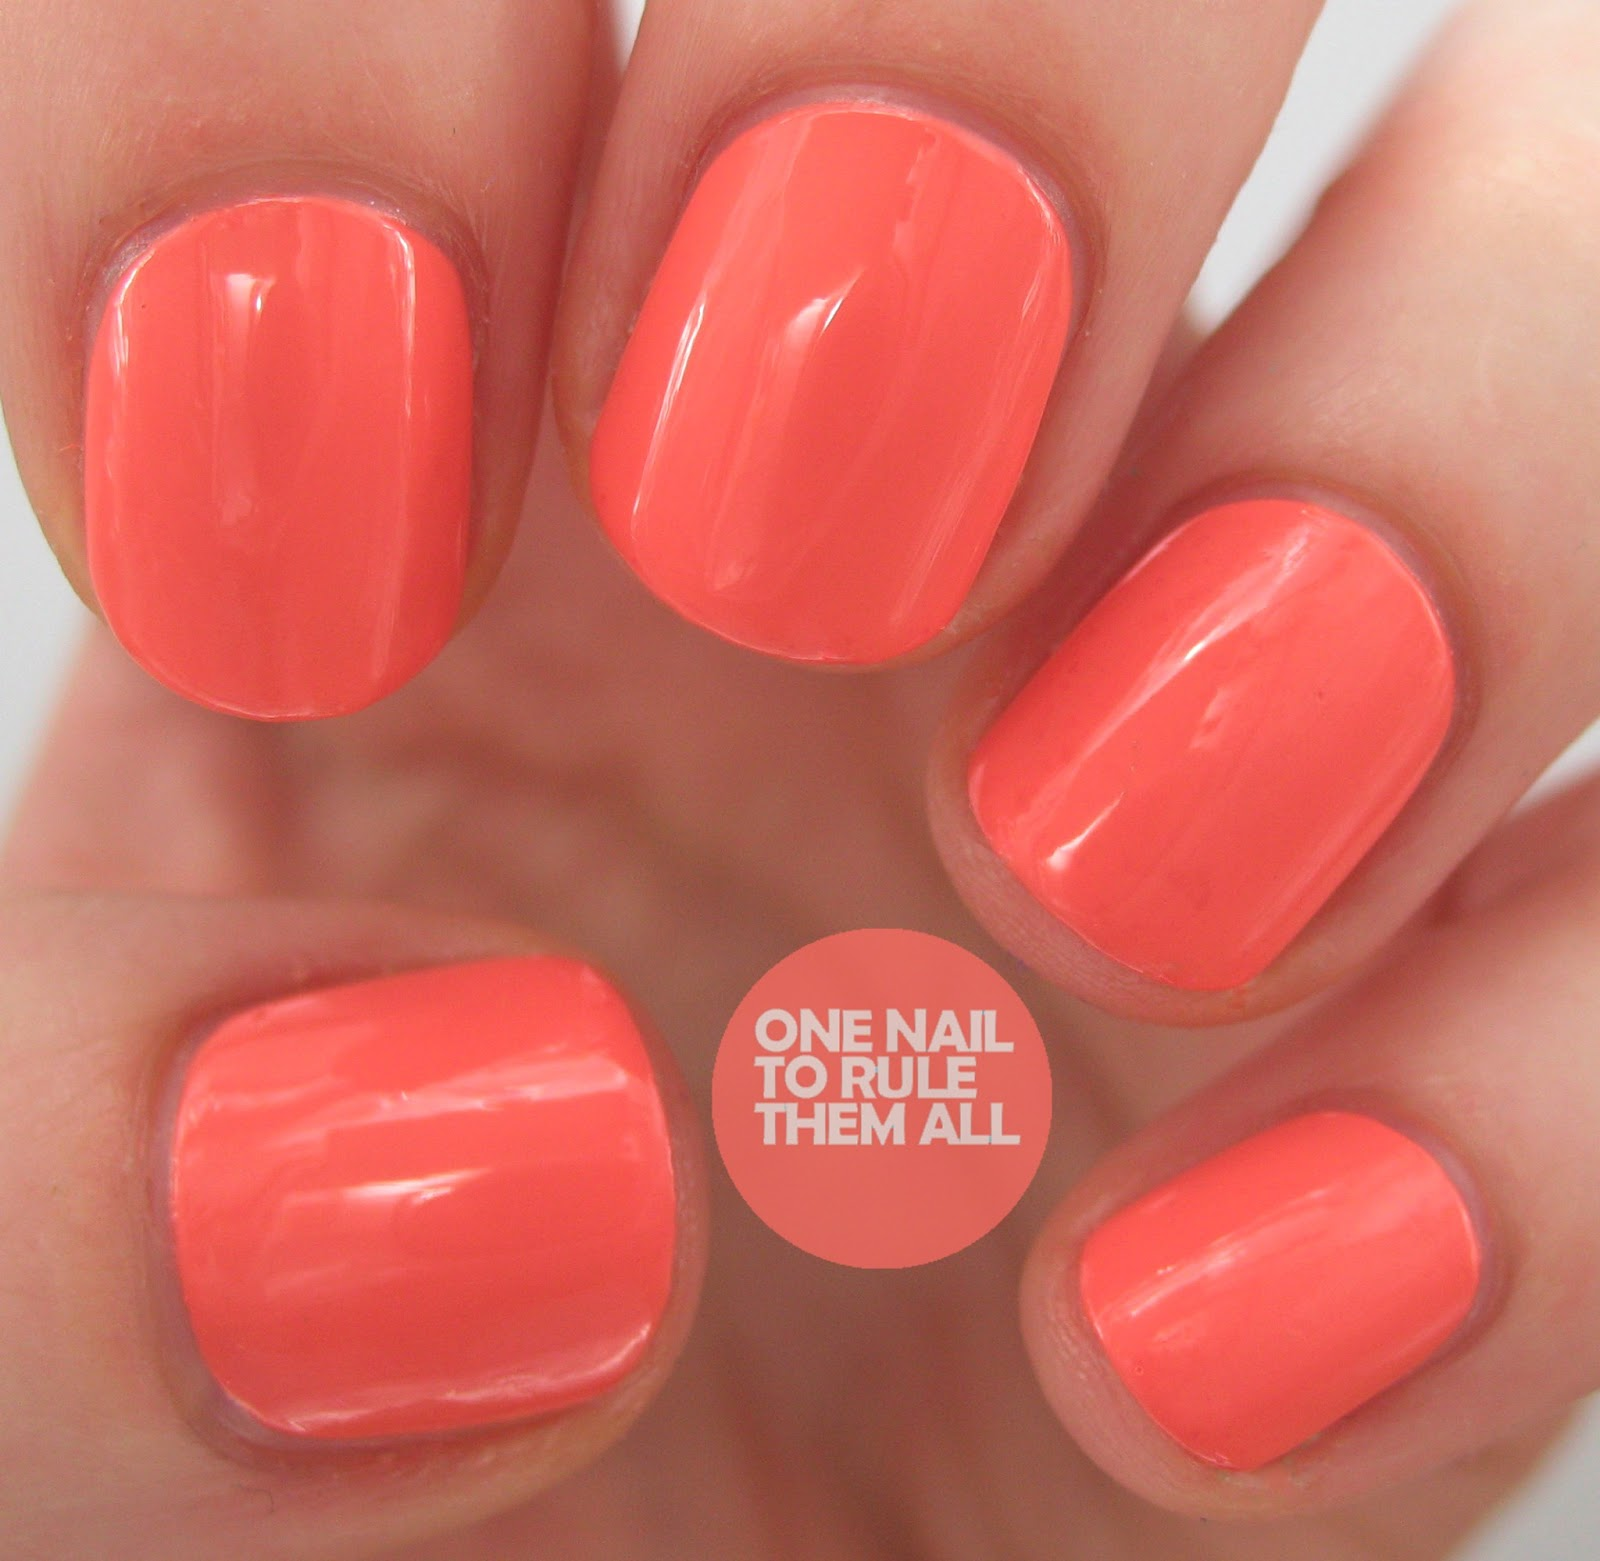 Finger Nail Paint: One Nail To Rule Them All: New Barry M Gelly Nail Paint